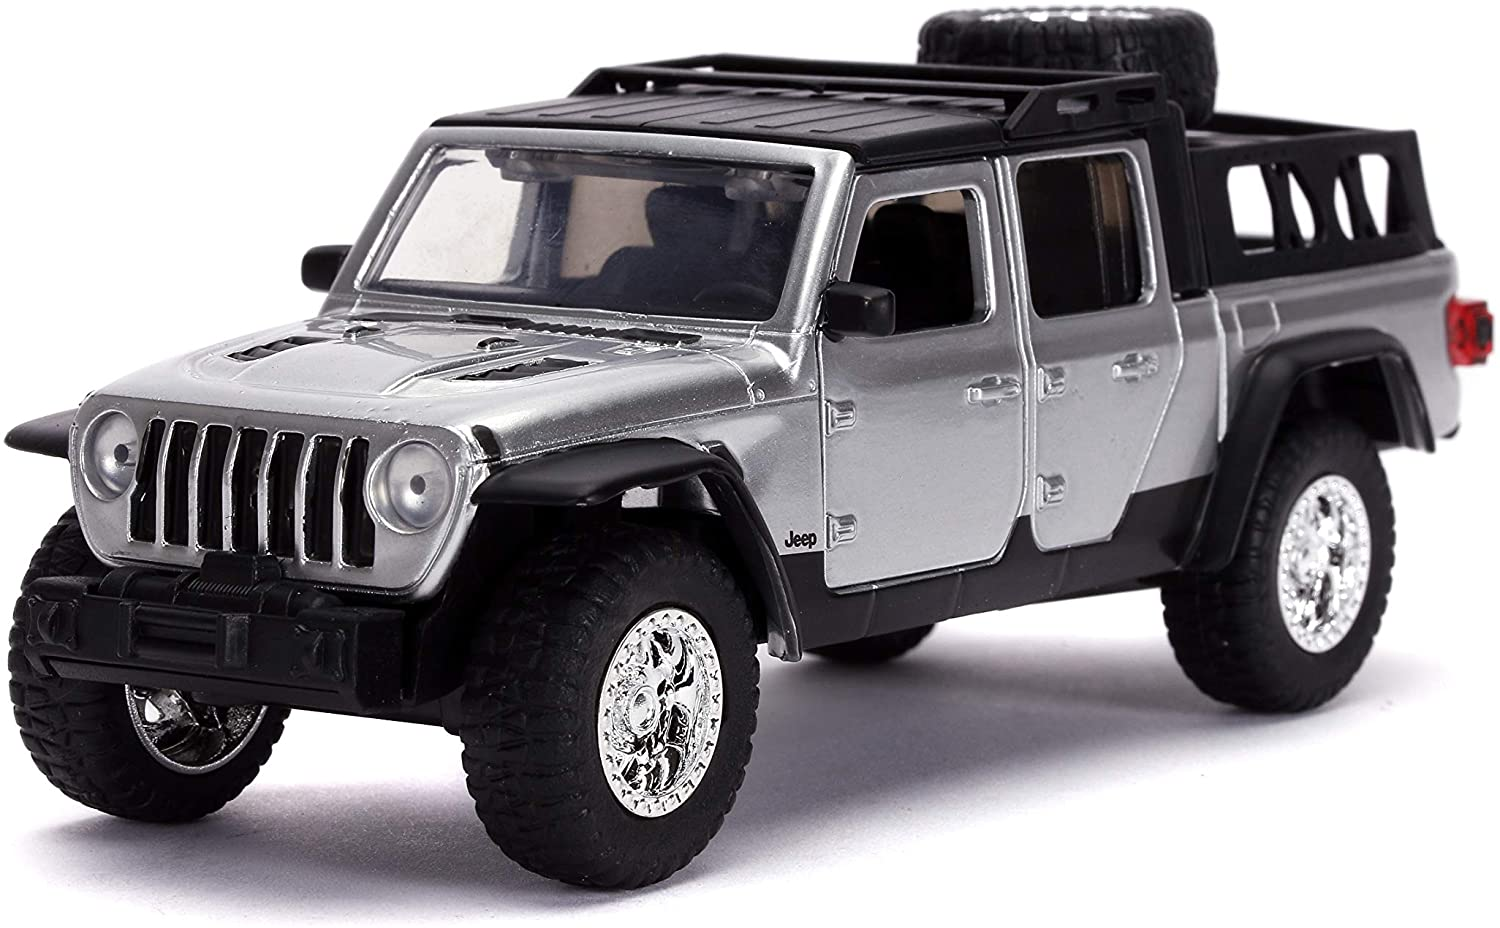 Fast & Furious 2020 Jeep Gladiator 1:32 die-cast Vehicle